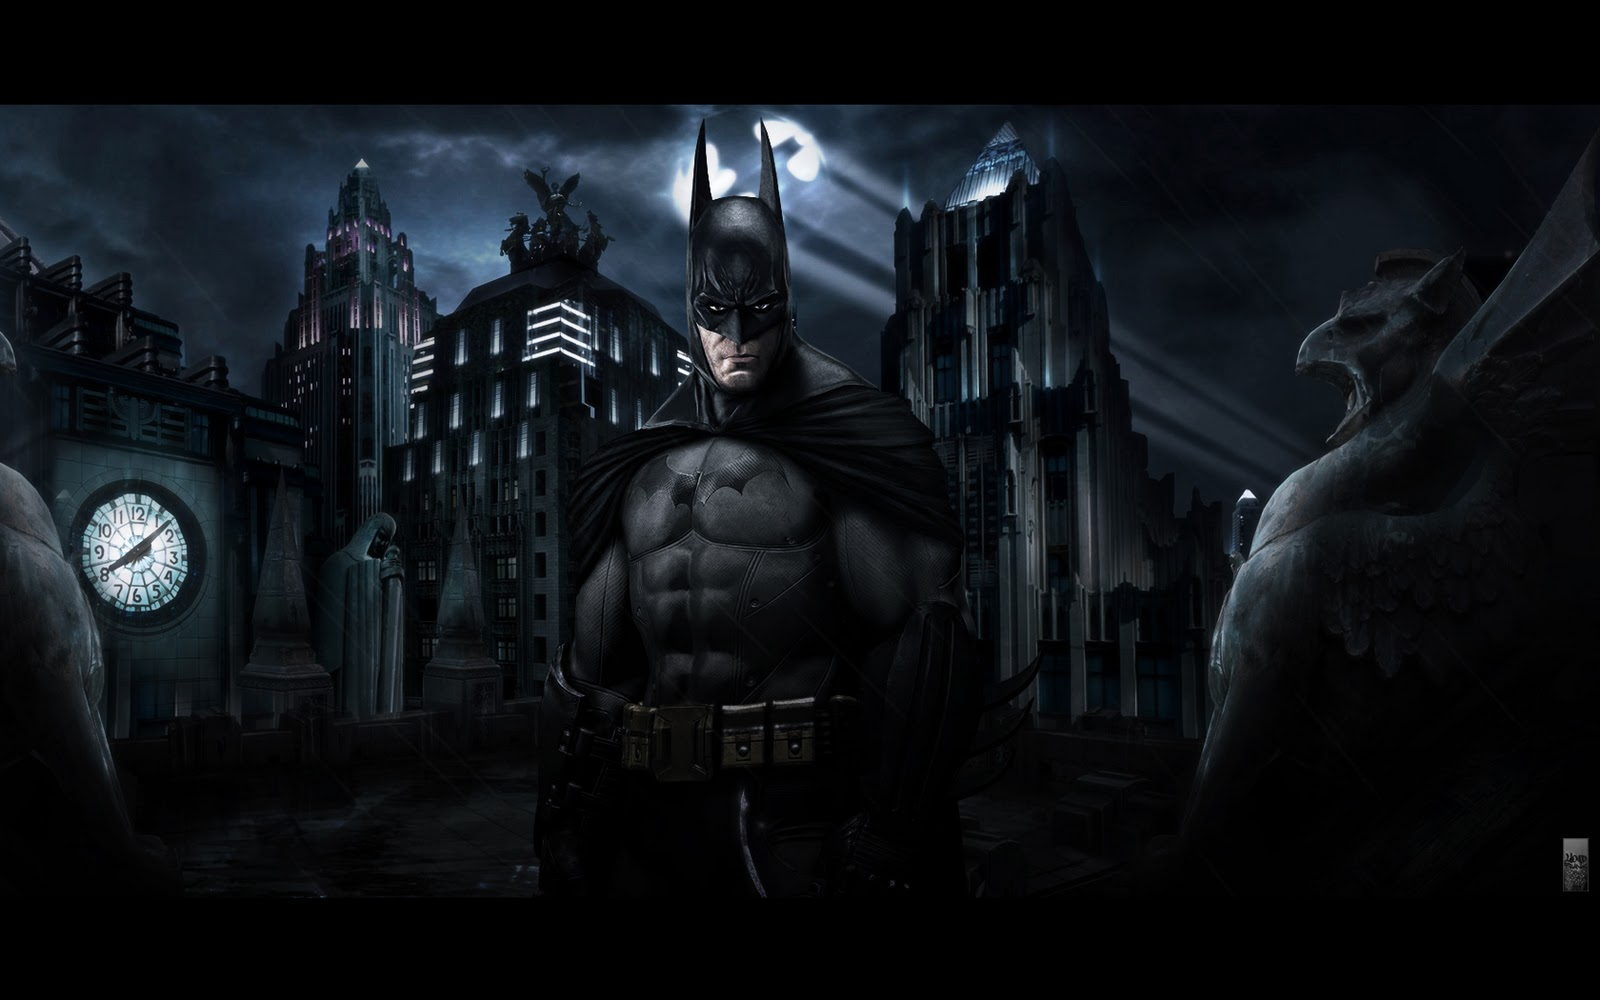 Batman Arkham Asylum Wallpaper: Free Download Wallpaper